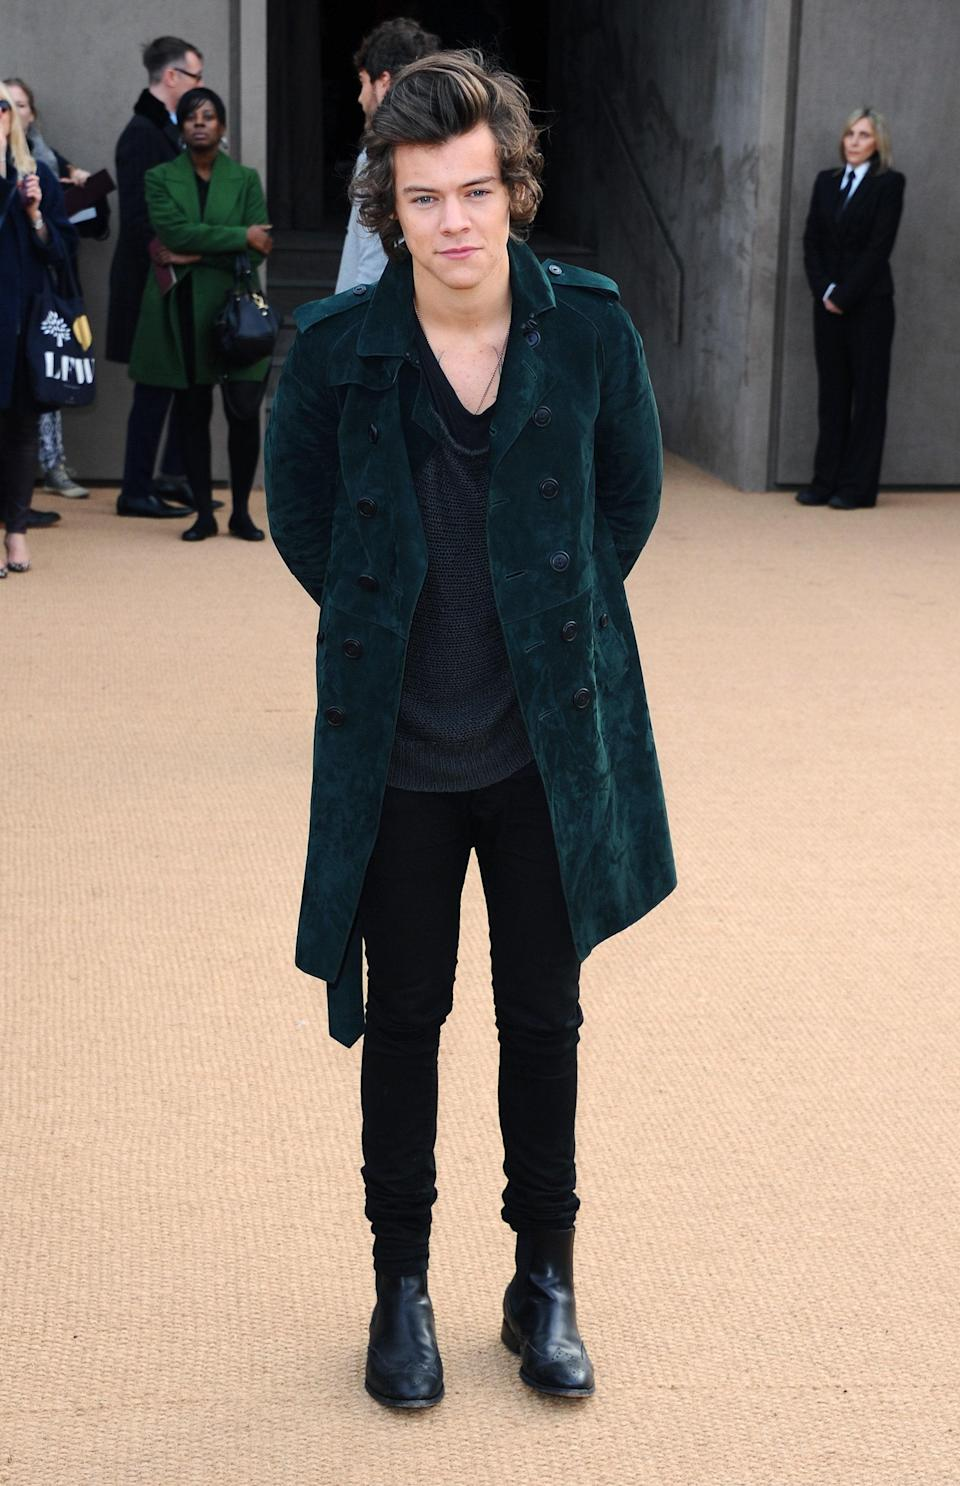 All it took was an emerald green suede trench over a simple black look, and Harry was good to go at London Fashion Week.